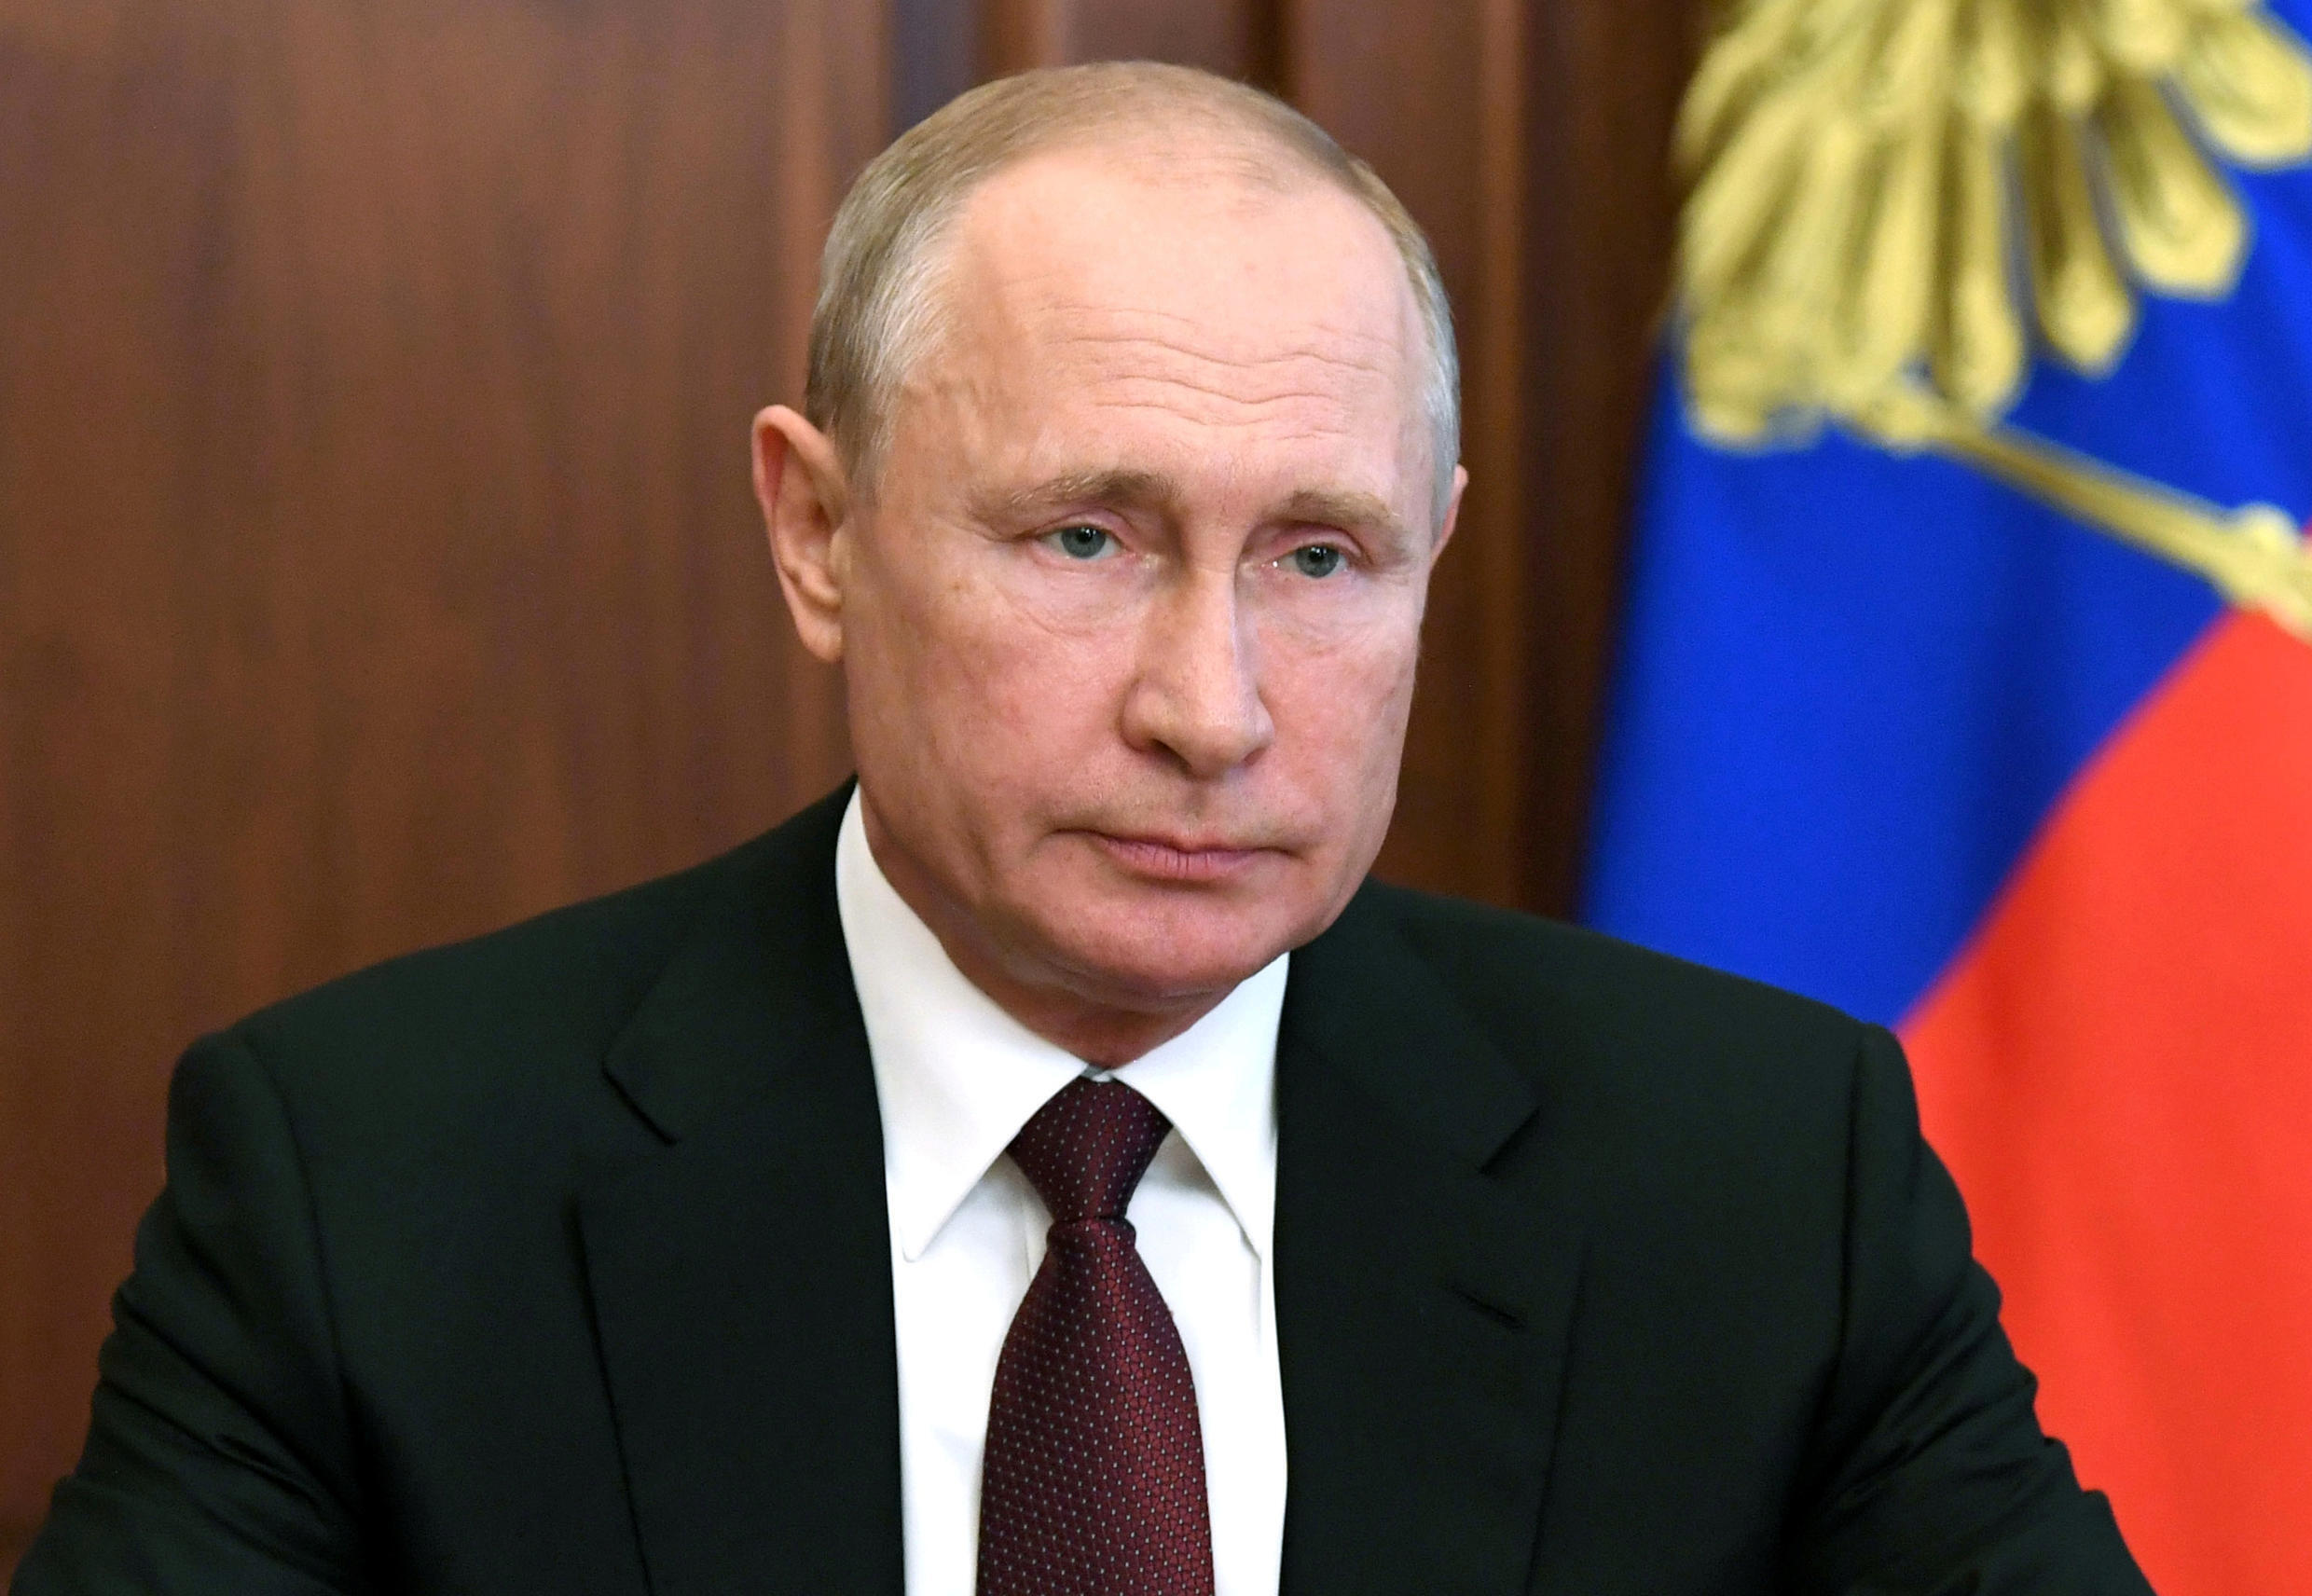 Russia's President Vladimir Putin delivers a televised address to the nation in Moscow, Russia June 23, 2020.